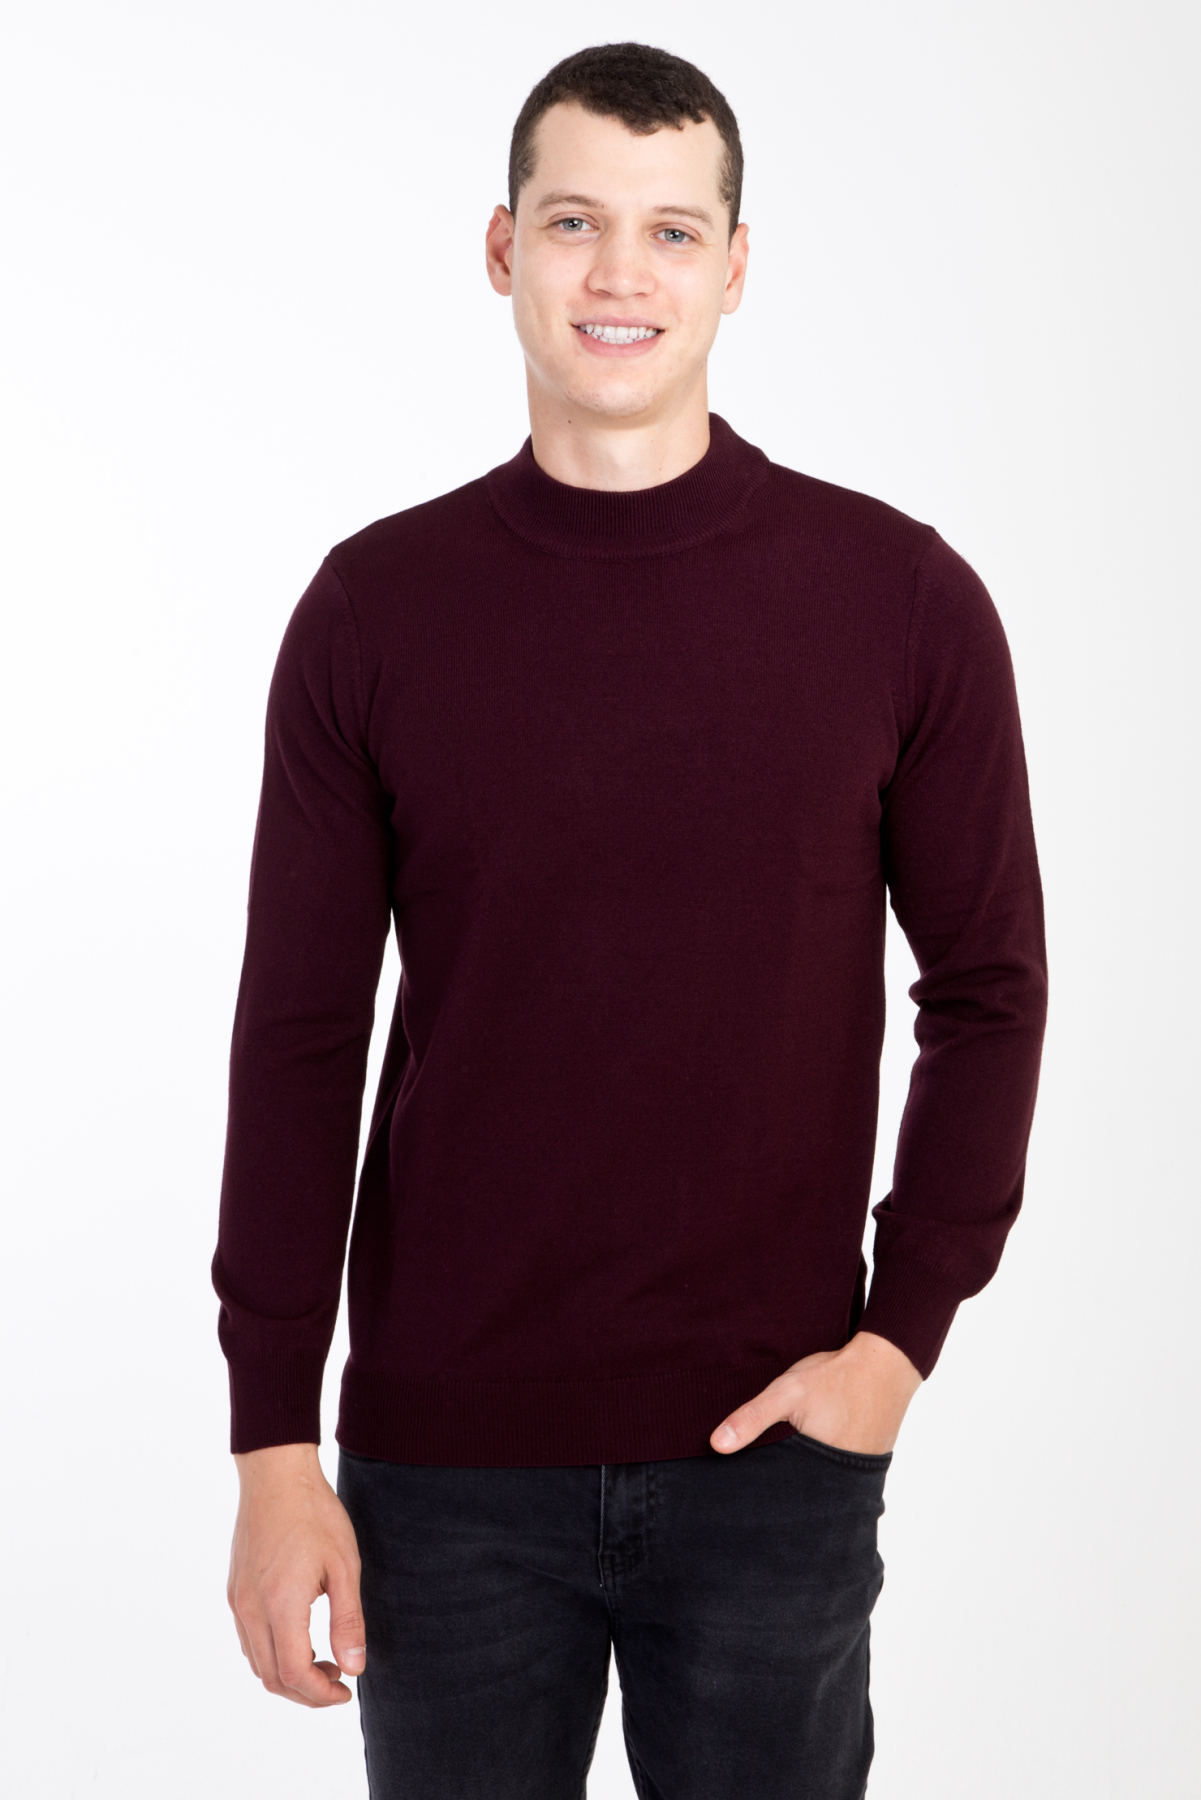 Kigili Round Neck Sweater Autumn Winter High Quality Warm Cool Long Sleeve Pullovers Men Solid Outwear Fit Knitting Clothing